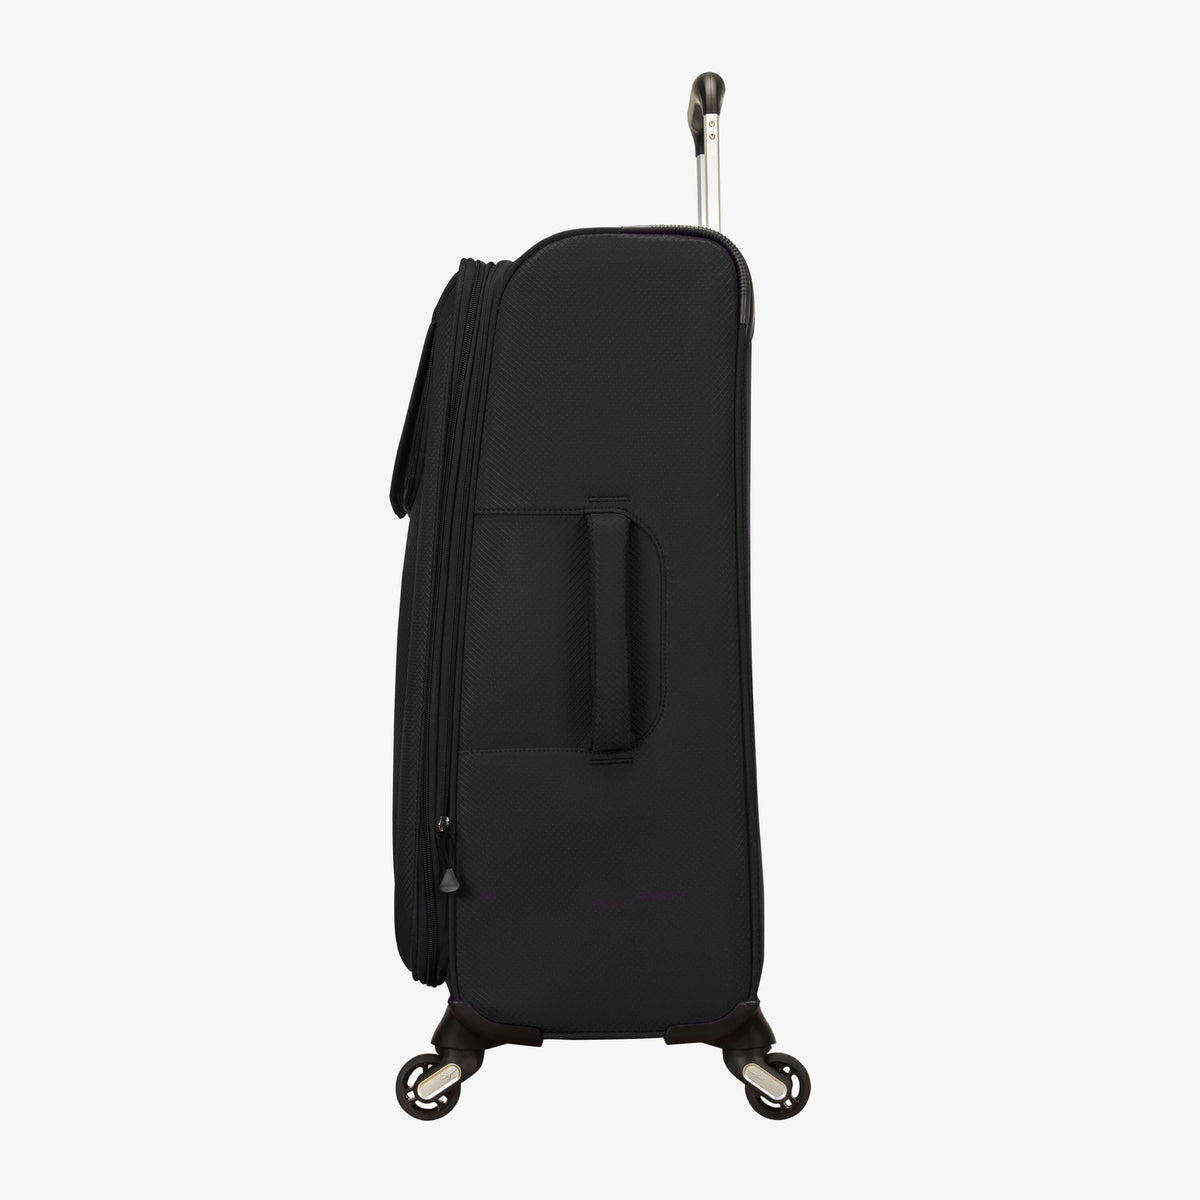 f70c2cea8 ... Medium Check-In Skyway Luggage 24-Inch Spinner Suitcase in Black in in  Color ...